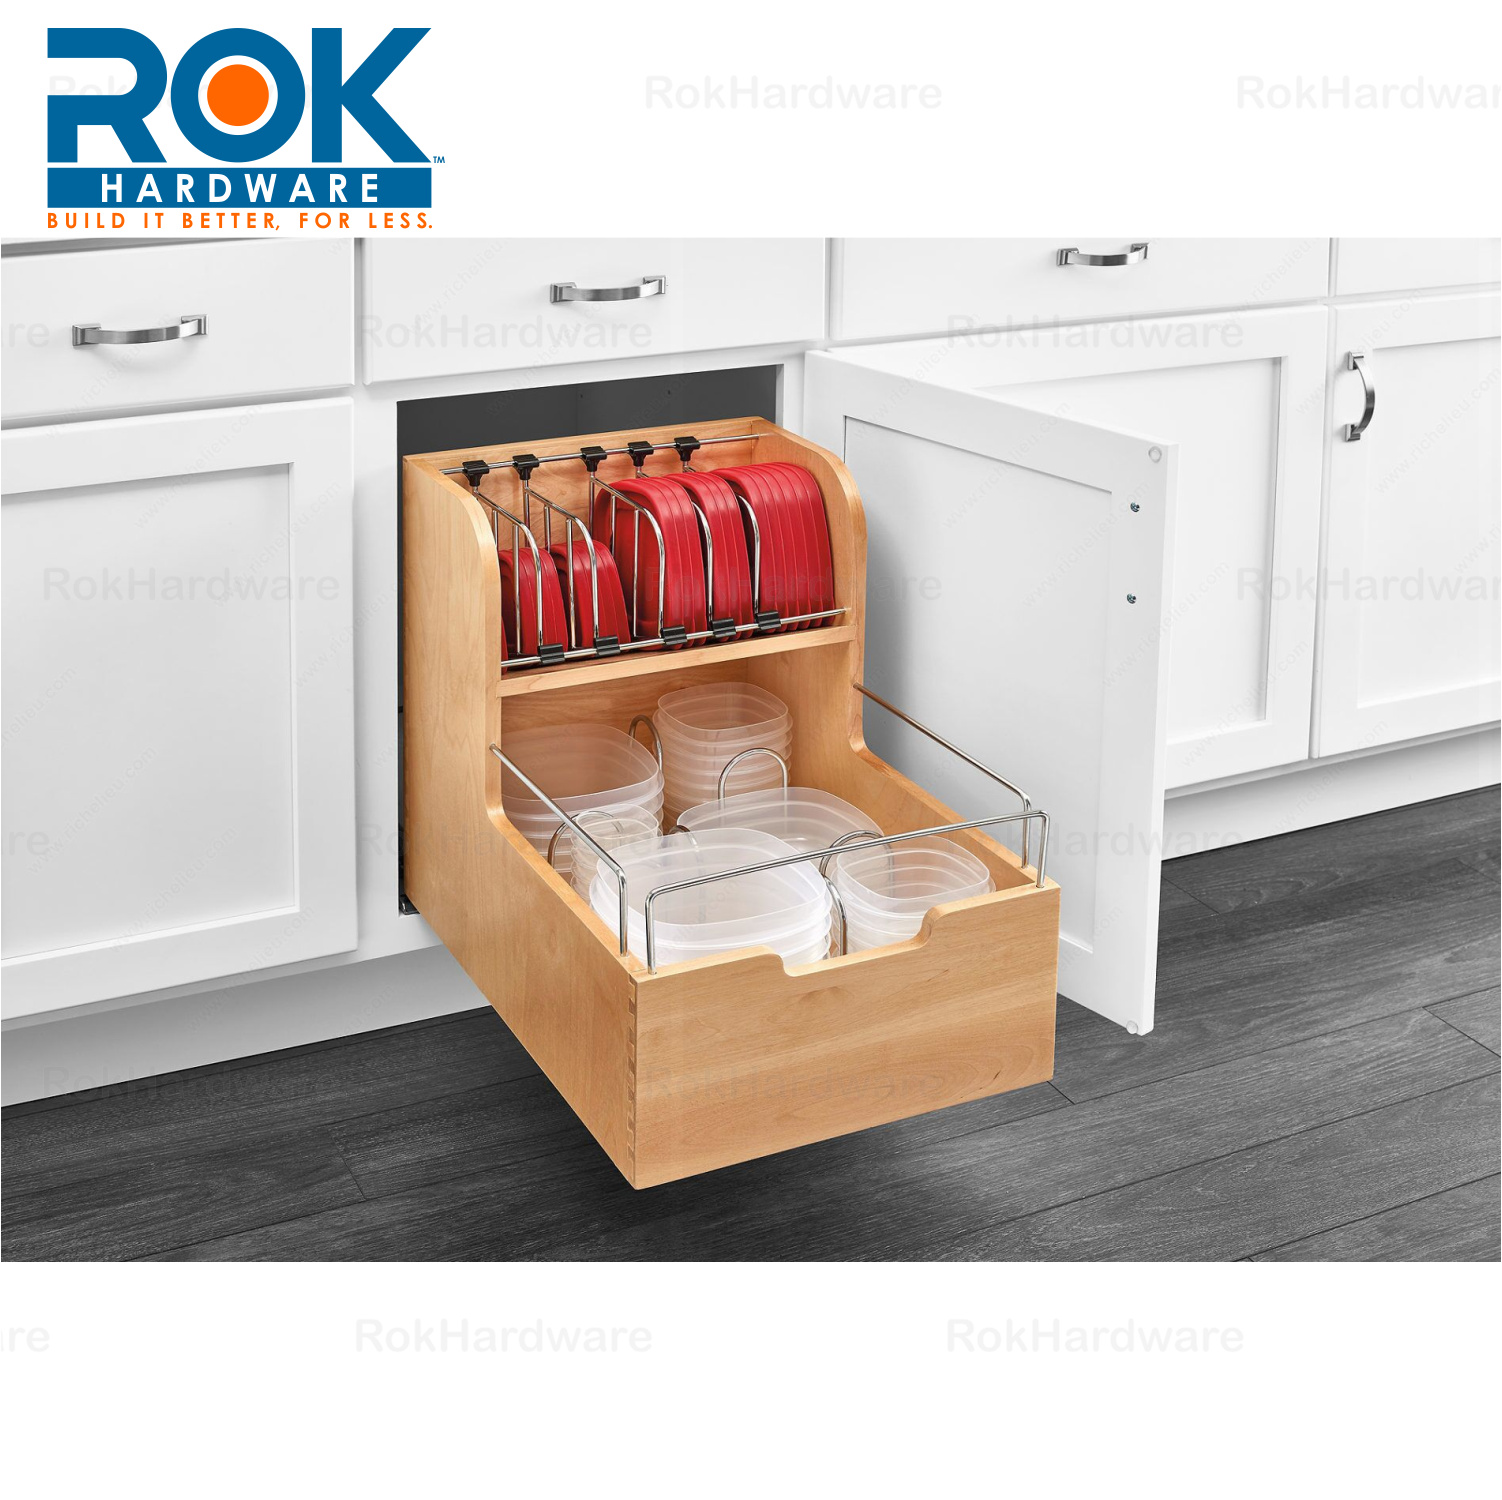 Rev a shelf kitchen cabinet food storage container 24 - Bathroom cabinet organizers pull out ...